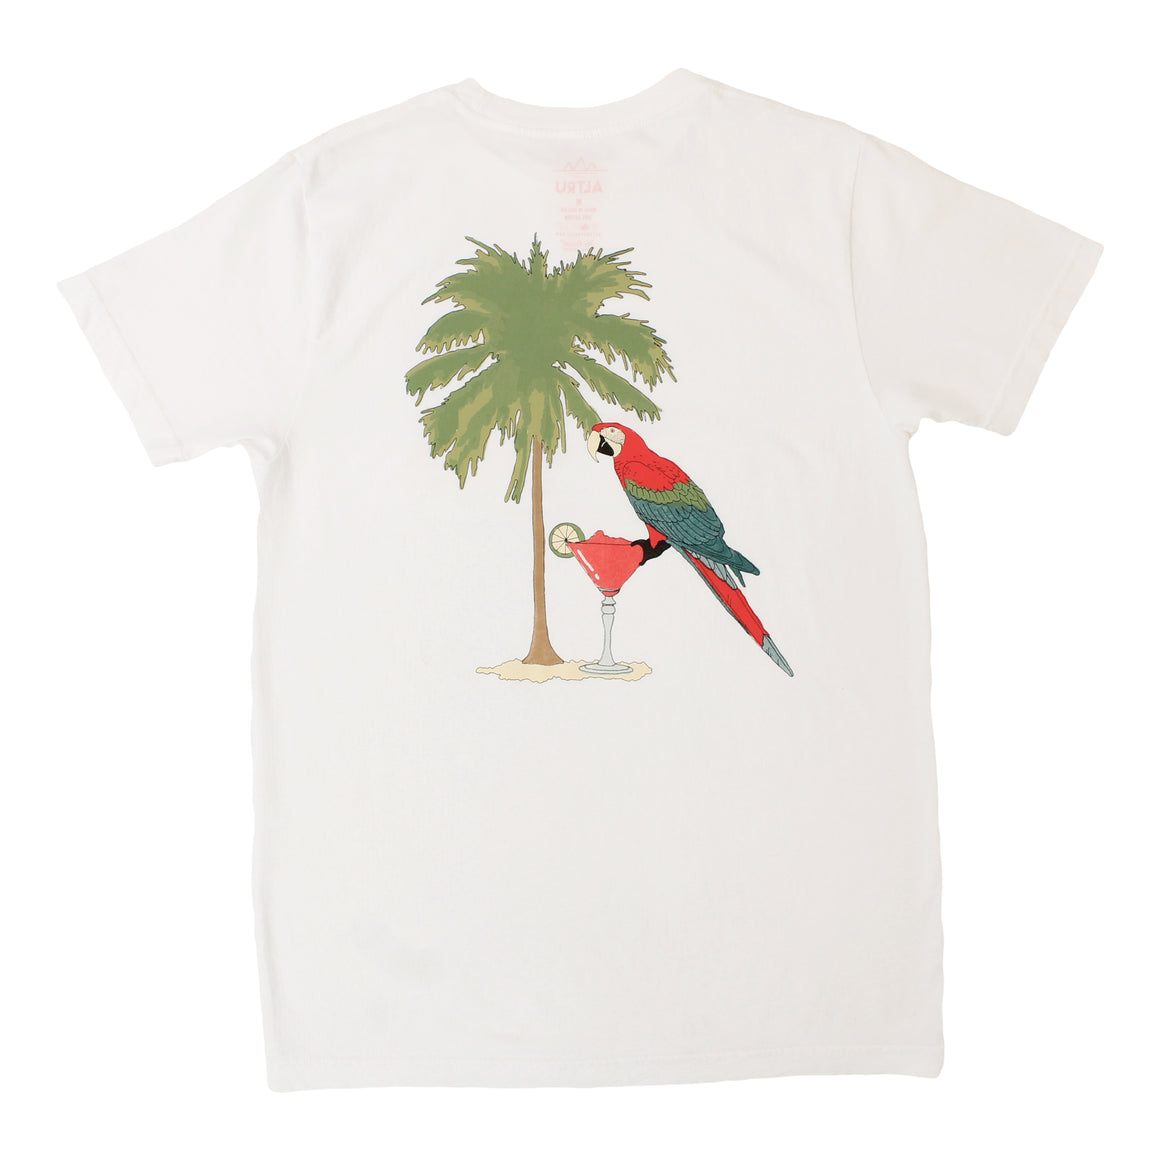 Parrot Tee with the graphic on the back by Altru Apparel